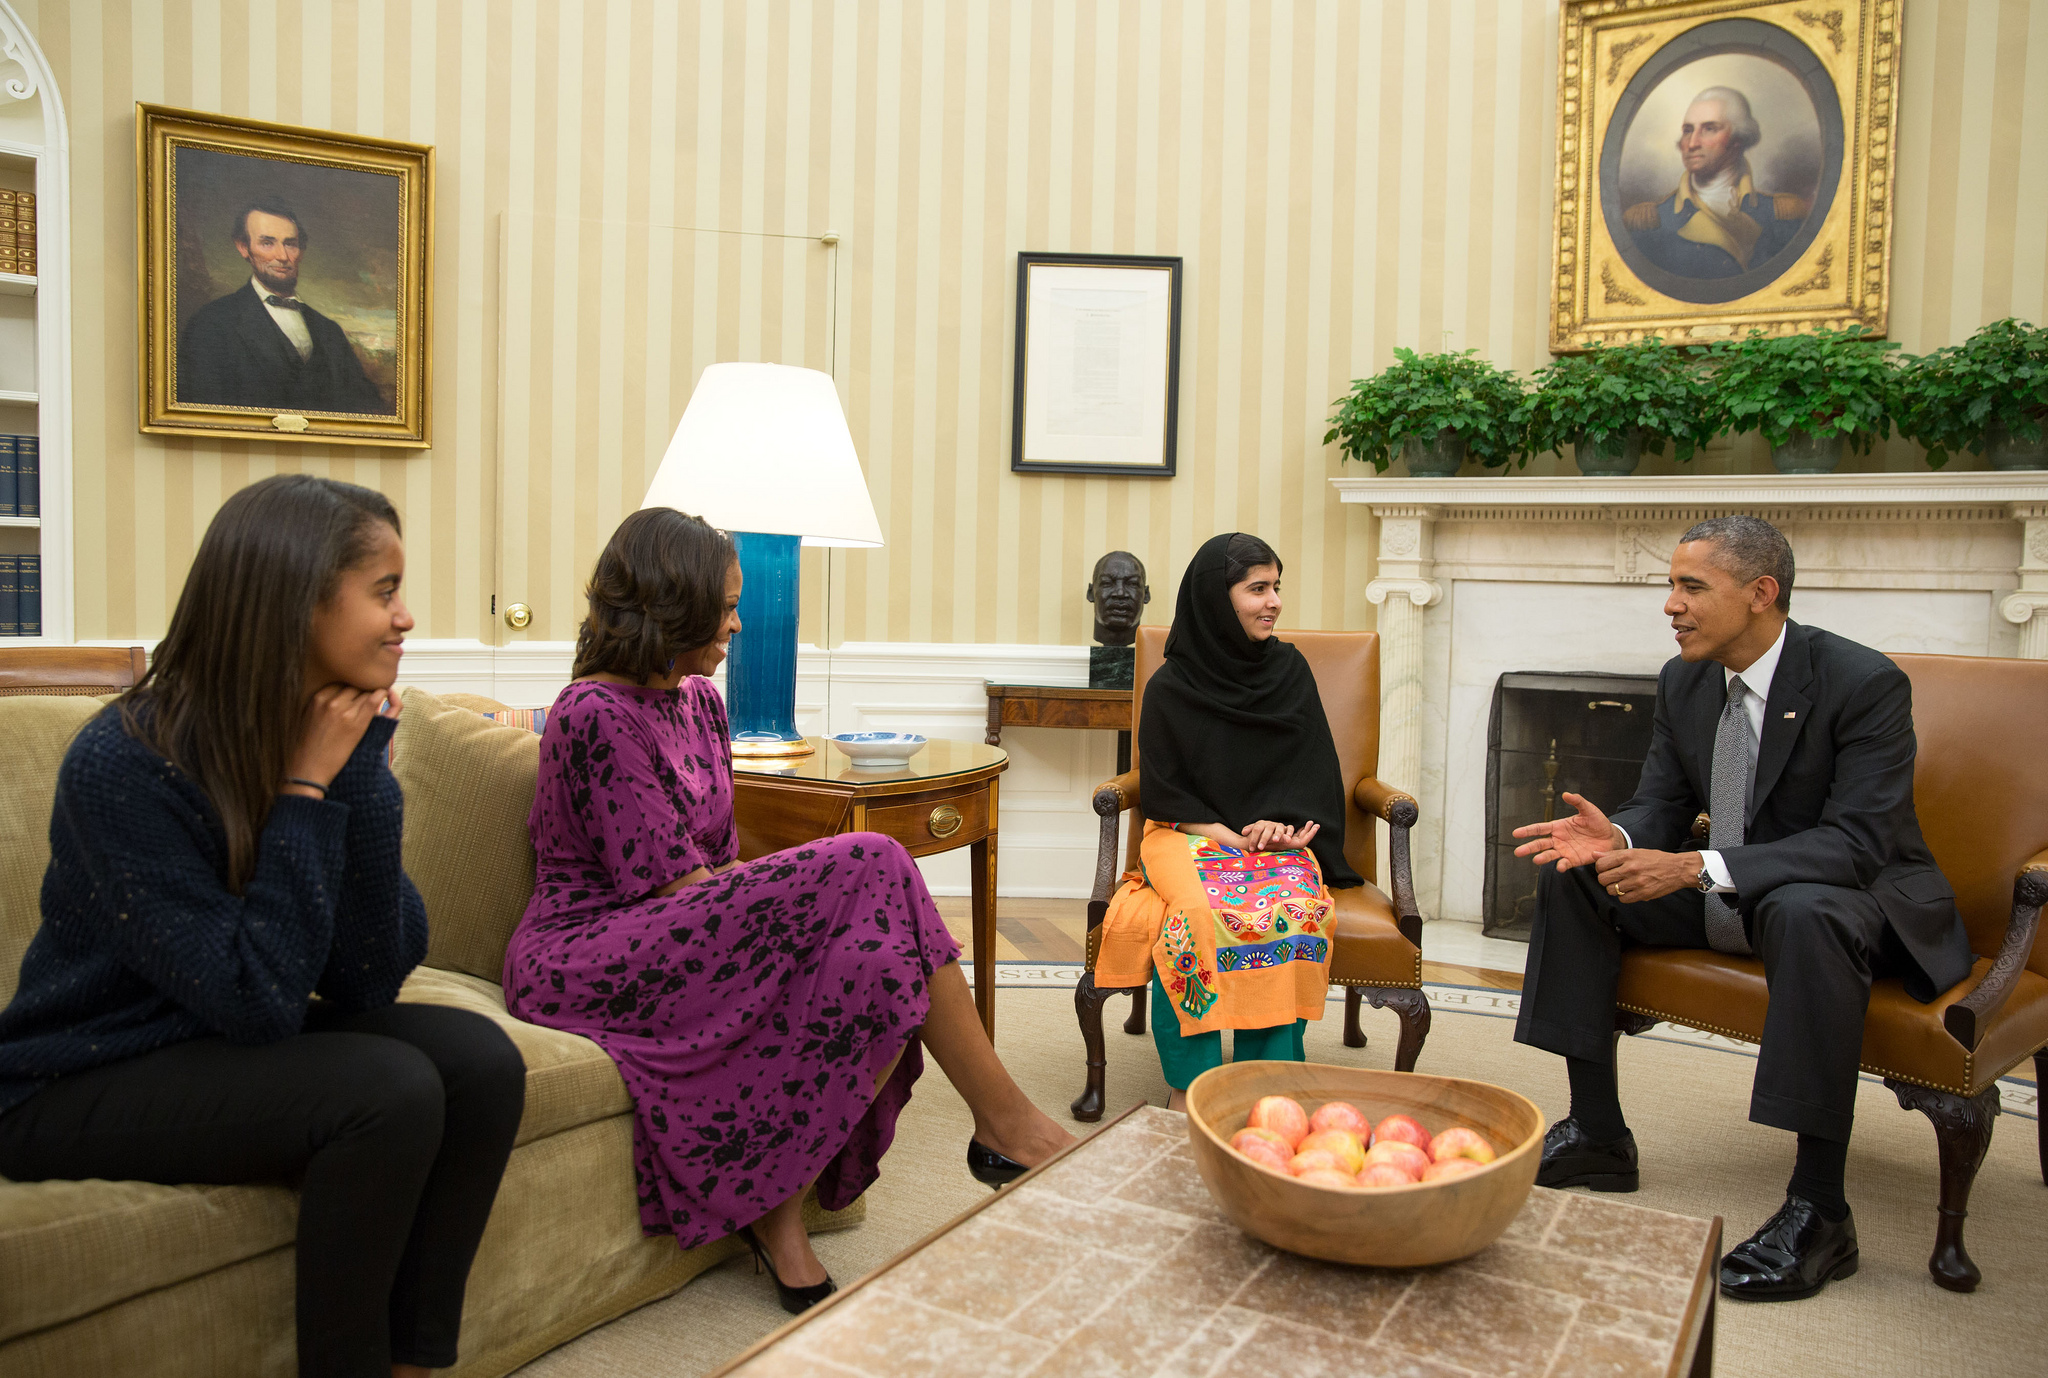 President Barack Obama, First Lady Michelle Obama, and their daughter Malia meet with Malala Yousafzai